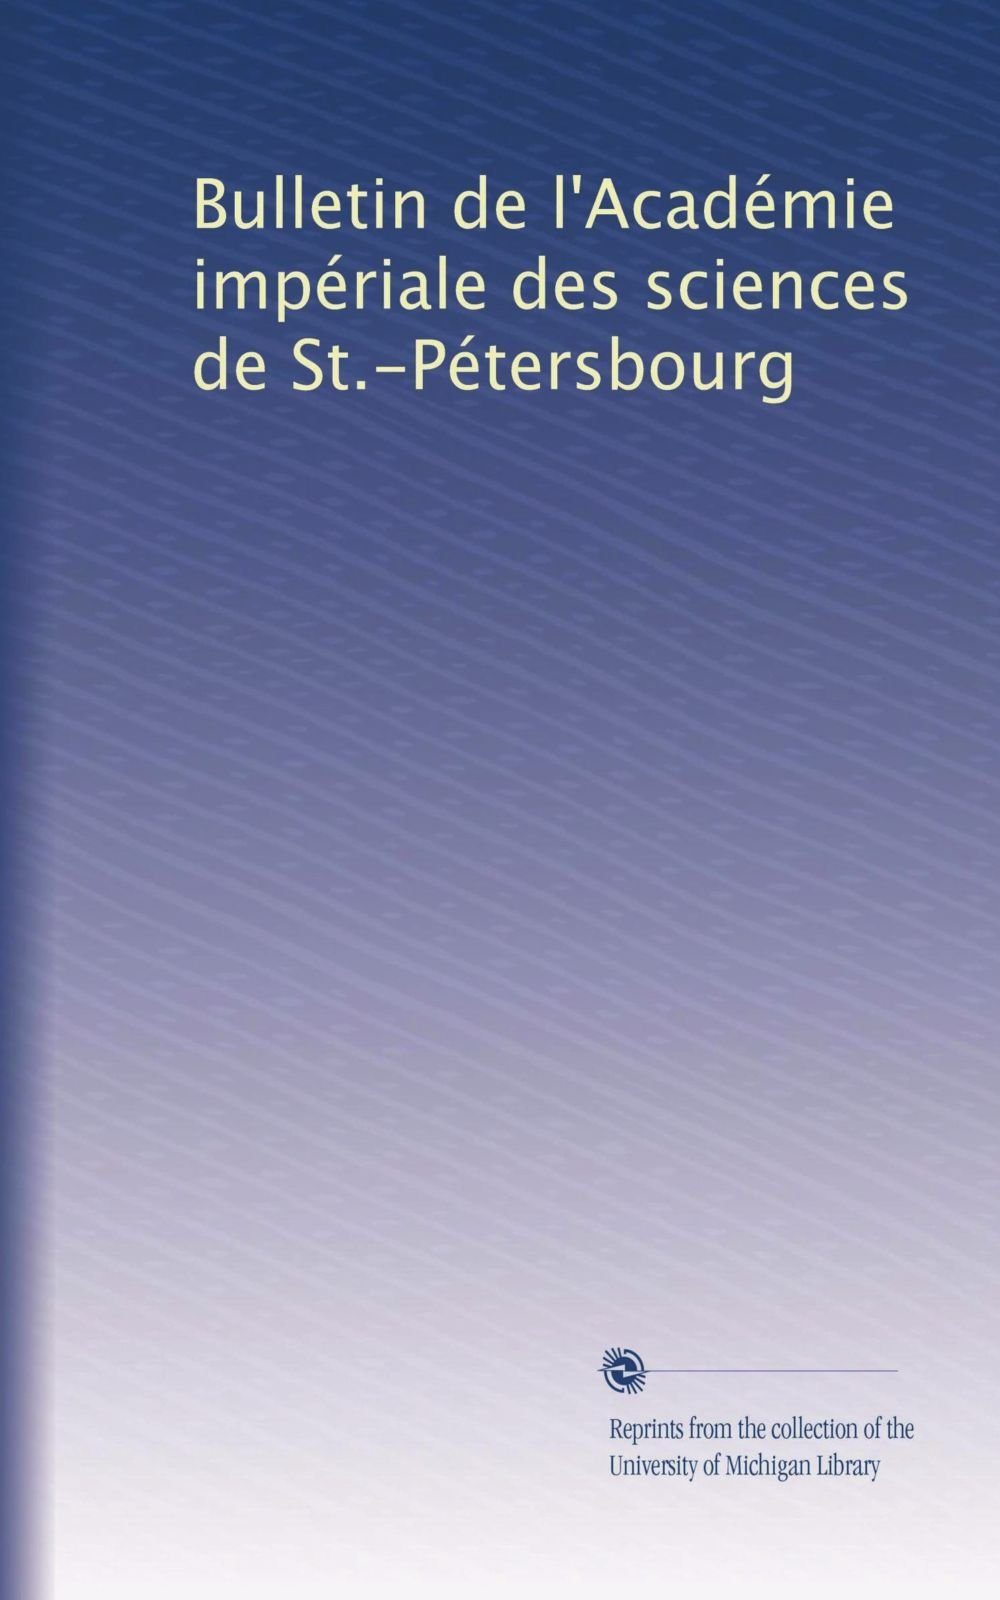 Download Bulletin de l'Académie impériale des sciences de St.-Pétersbourg (Volume 20) (French Edition) pdf